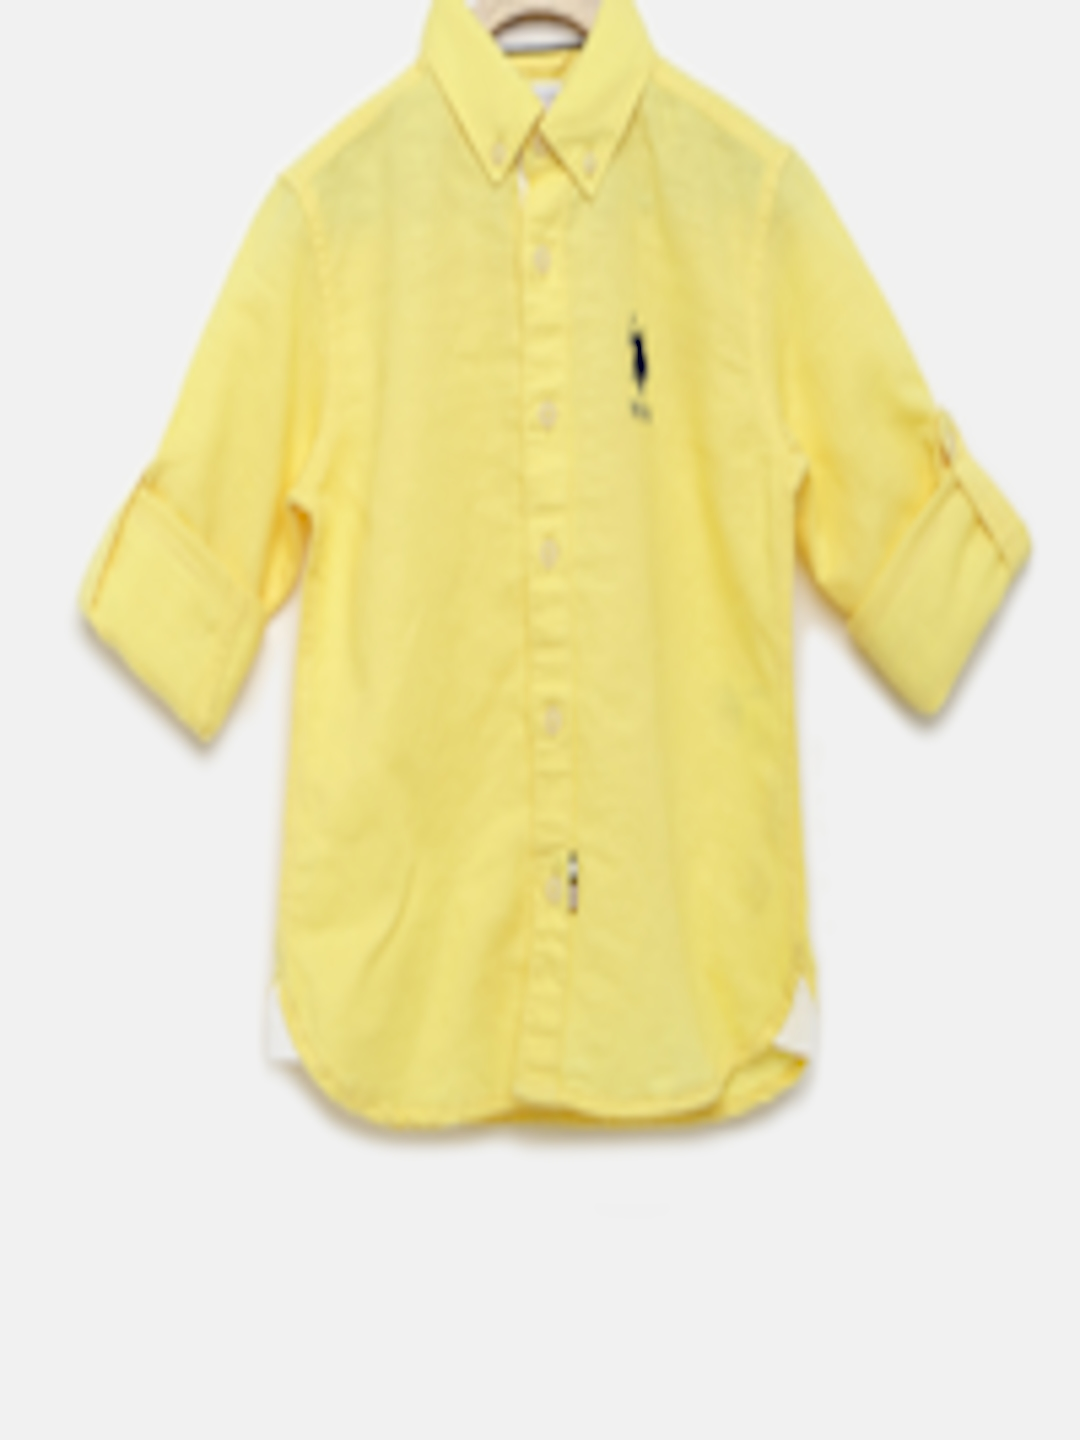 1cab0a67 Buy U.S. Polo Assn. Kids Boys Yellow Solid Linen Casual Shirt - - Apparel  for Boys